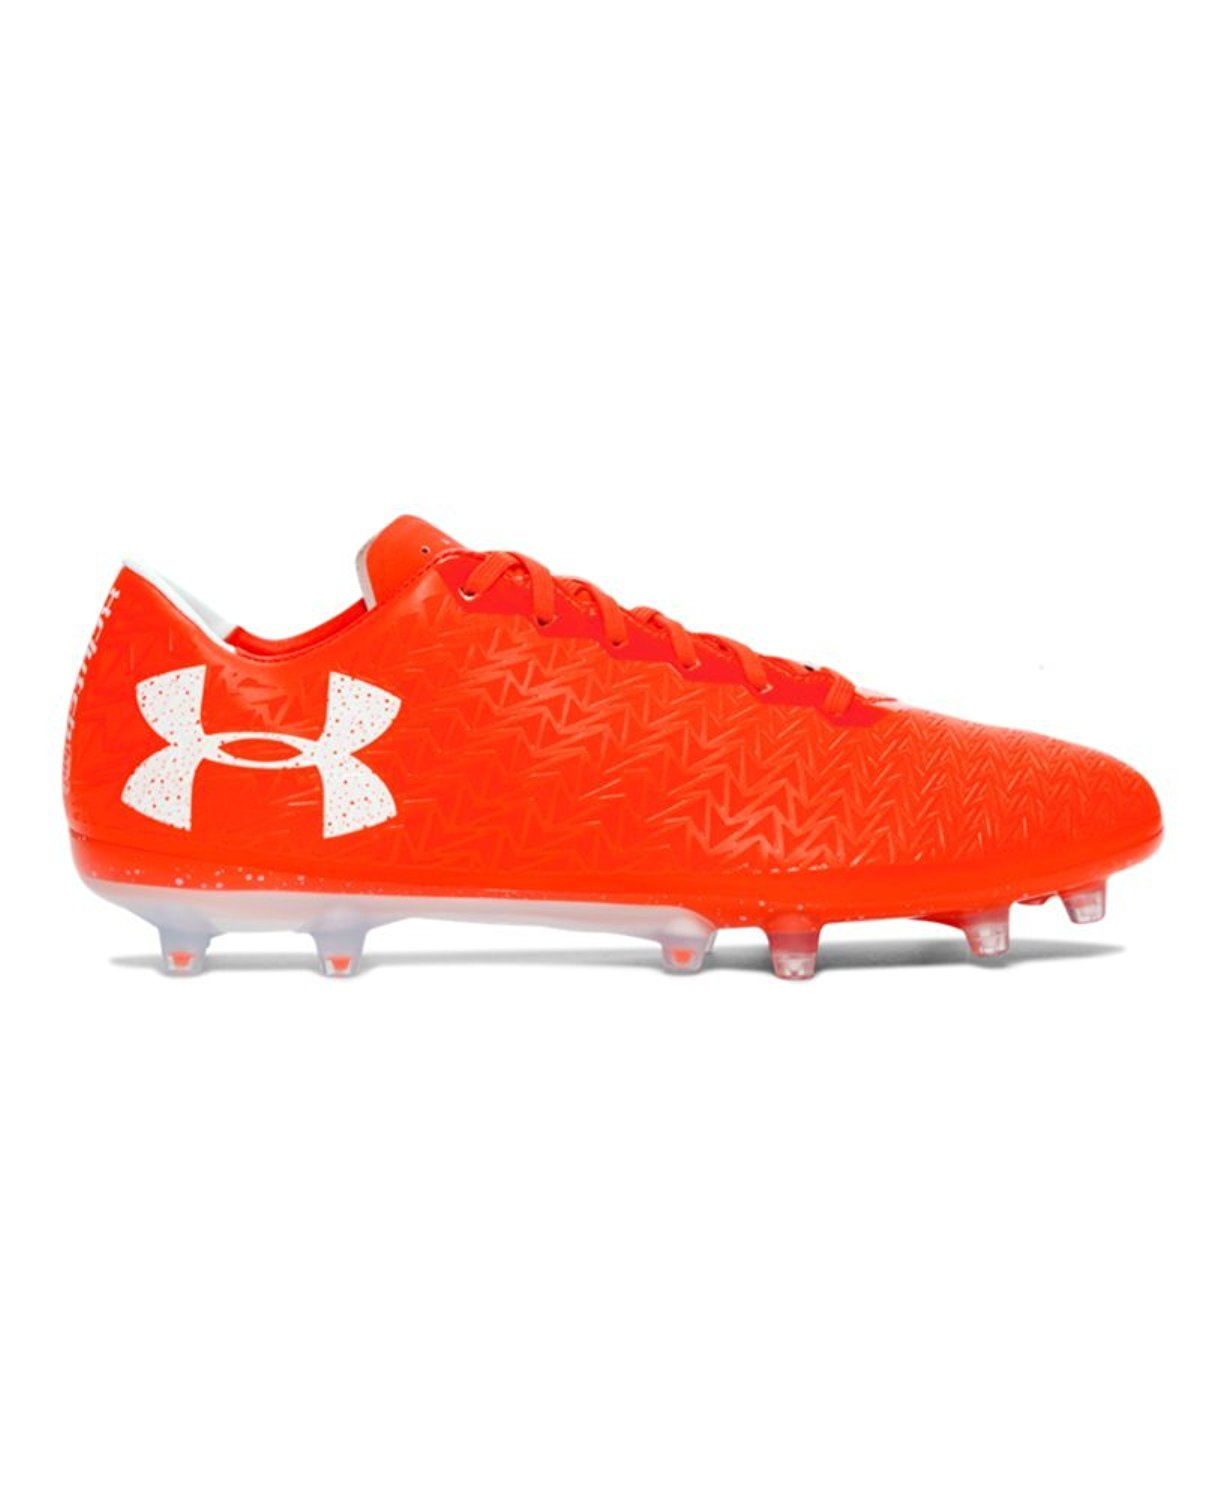 aa46defba9 Buy Under Armour Clutchfit Force FG Soccer Cleats in Cheap Price on ...